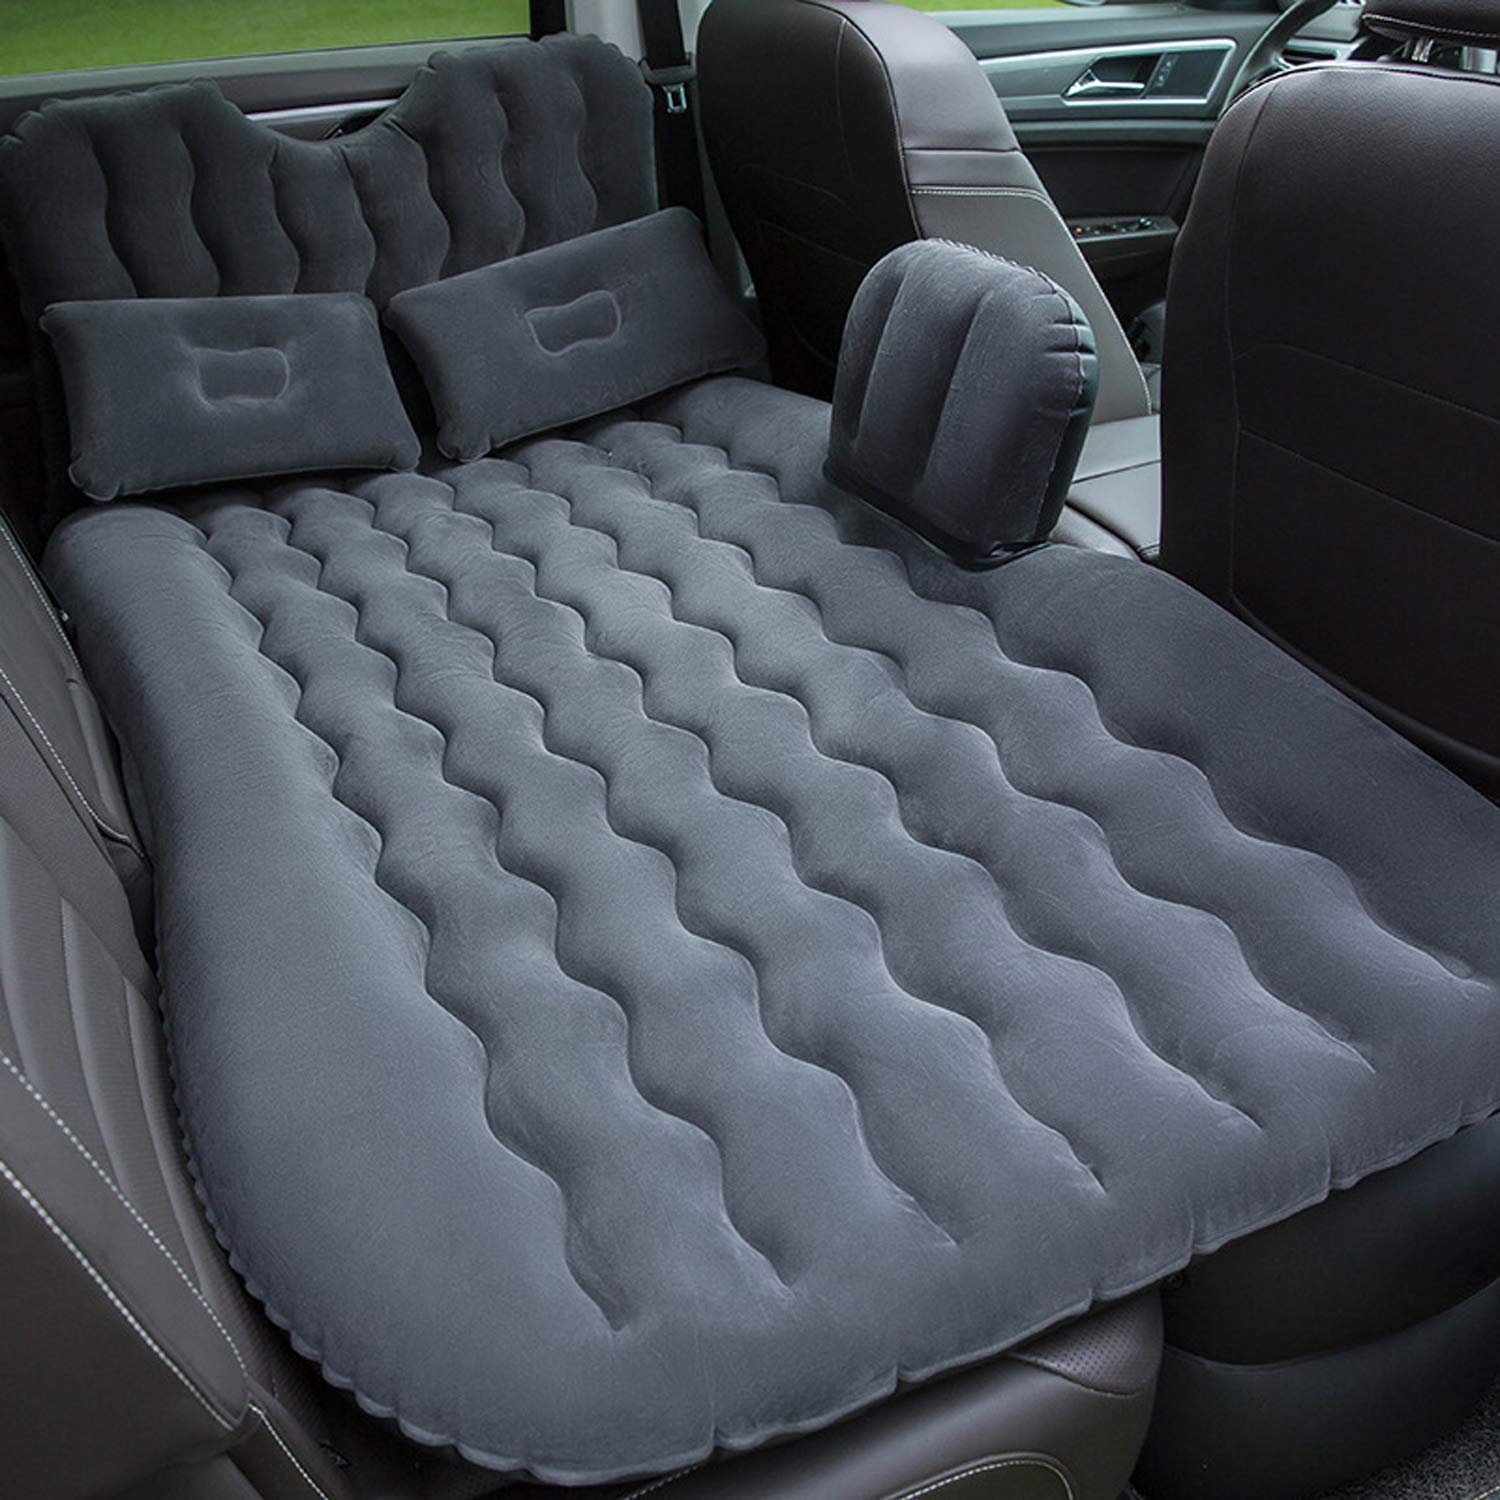 MKING Car Inflatable Air Mattress Back Seat Pump Portable Travel Camping Sleep Bed Cushion with Back Support Fits Universal Car SUV Truck by MKING